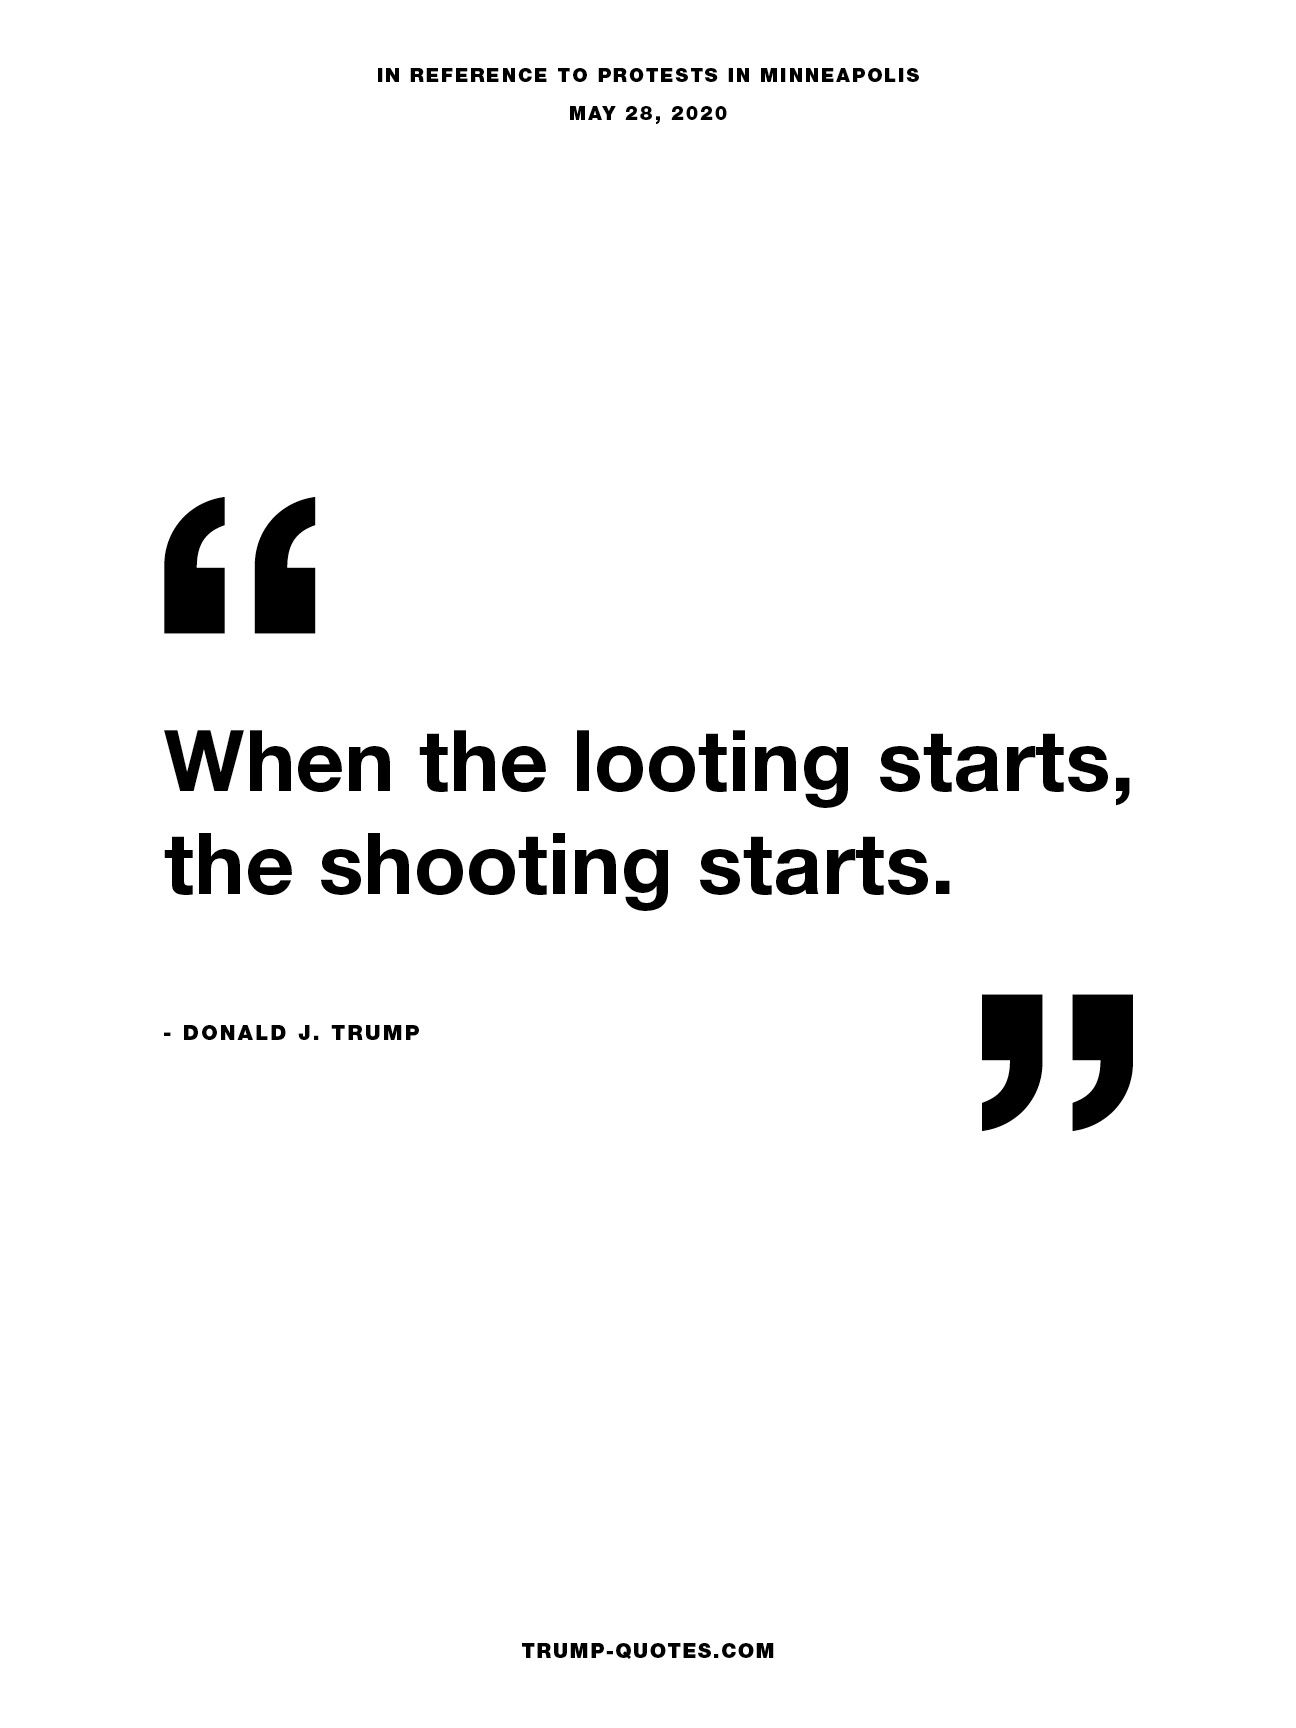 When the looting starts, the shooting starts.